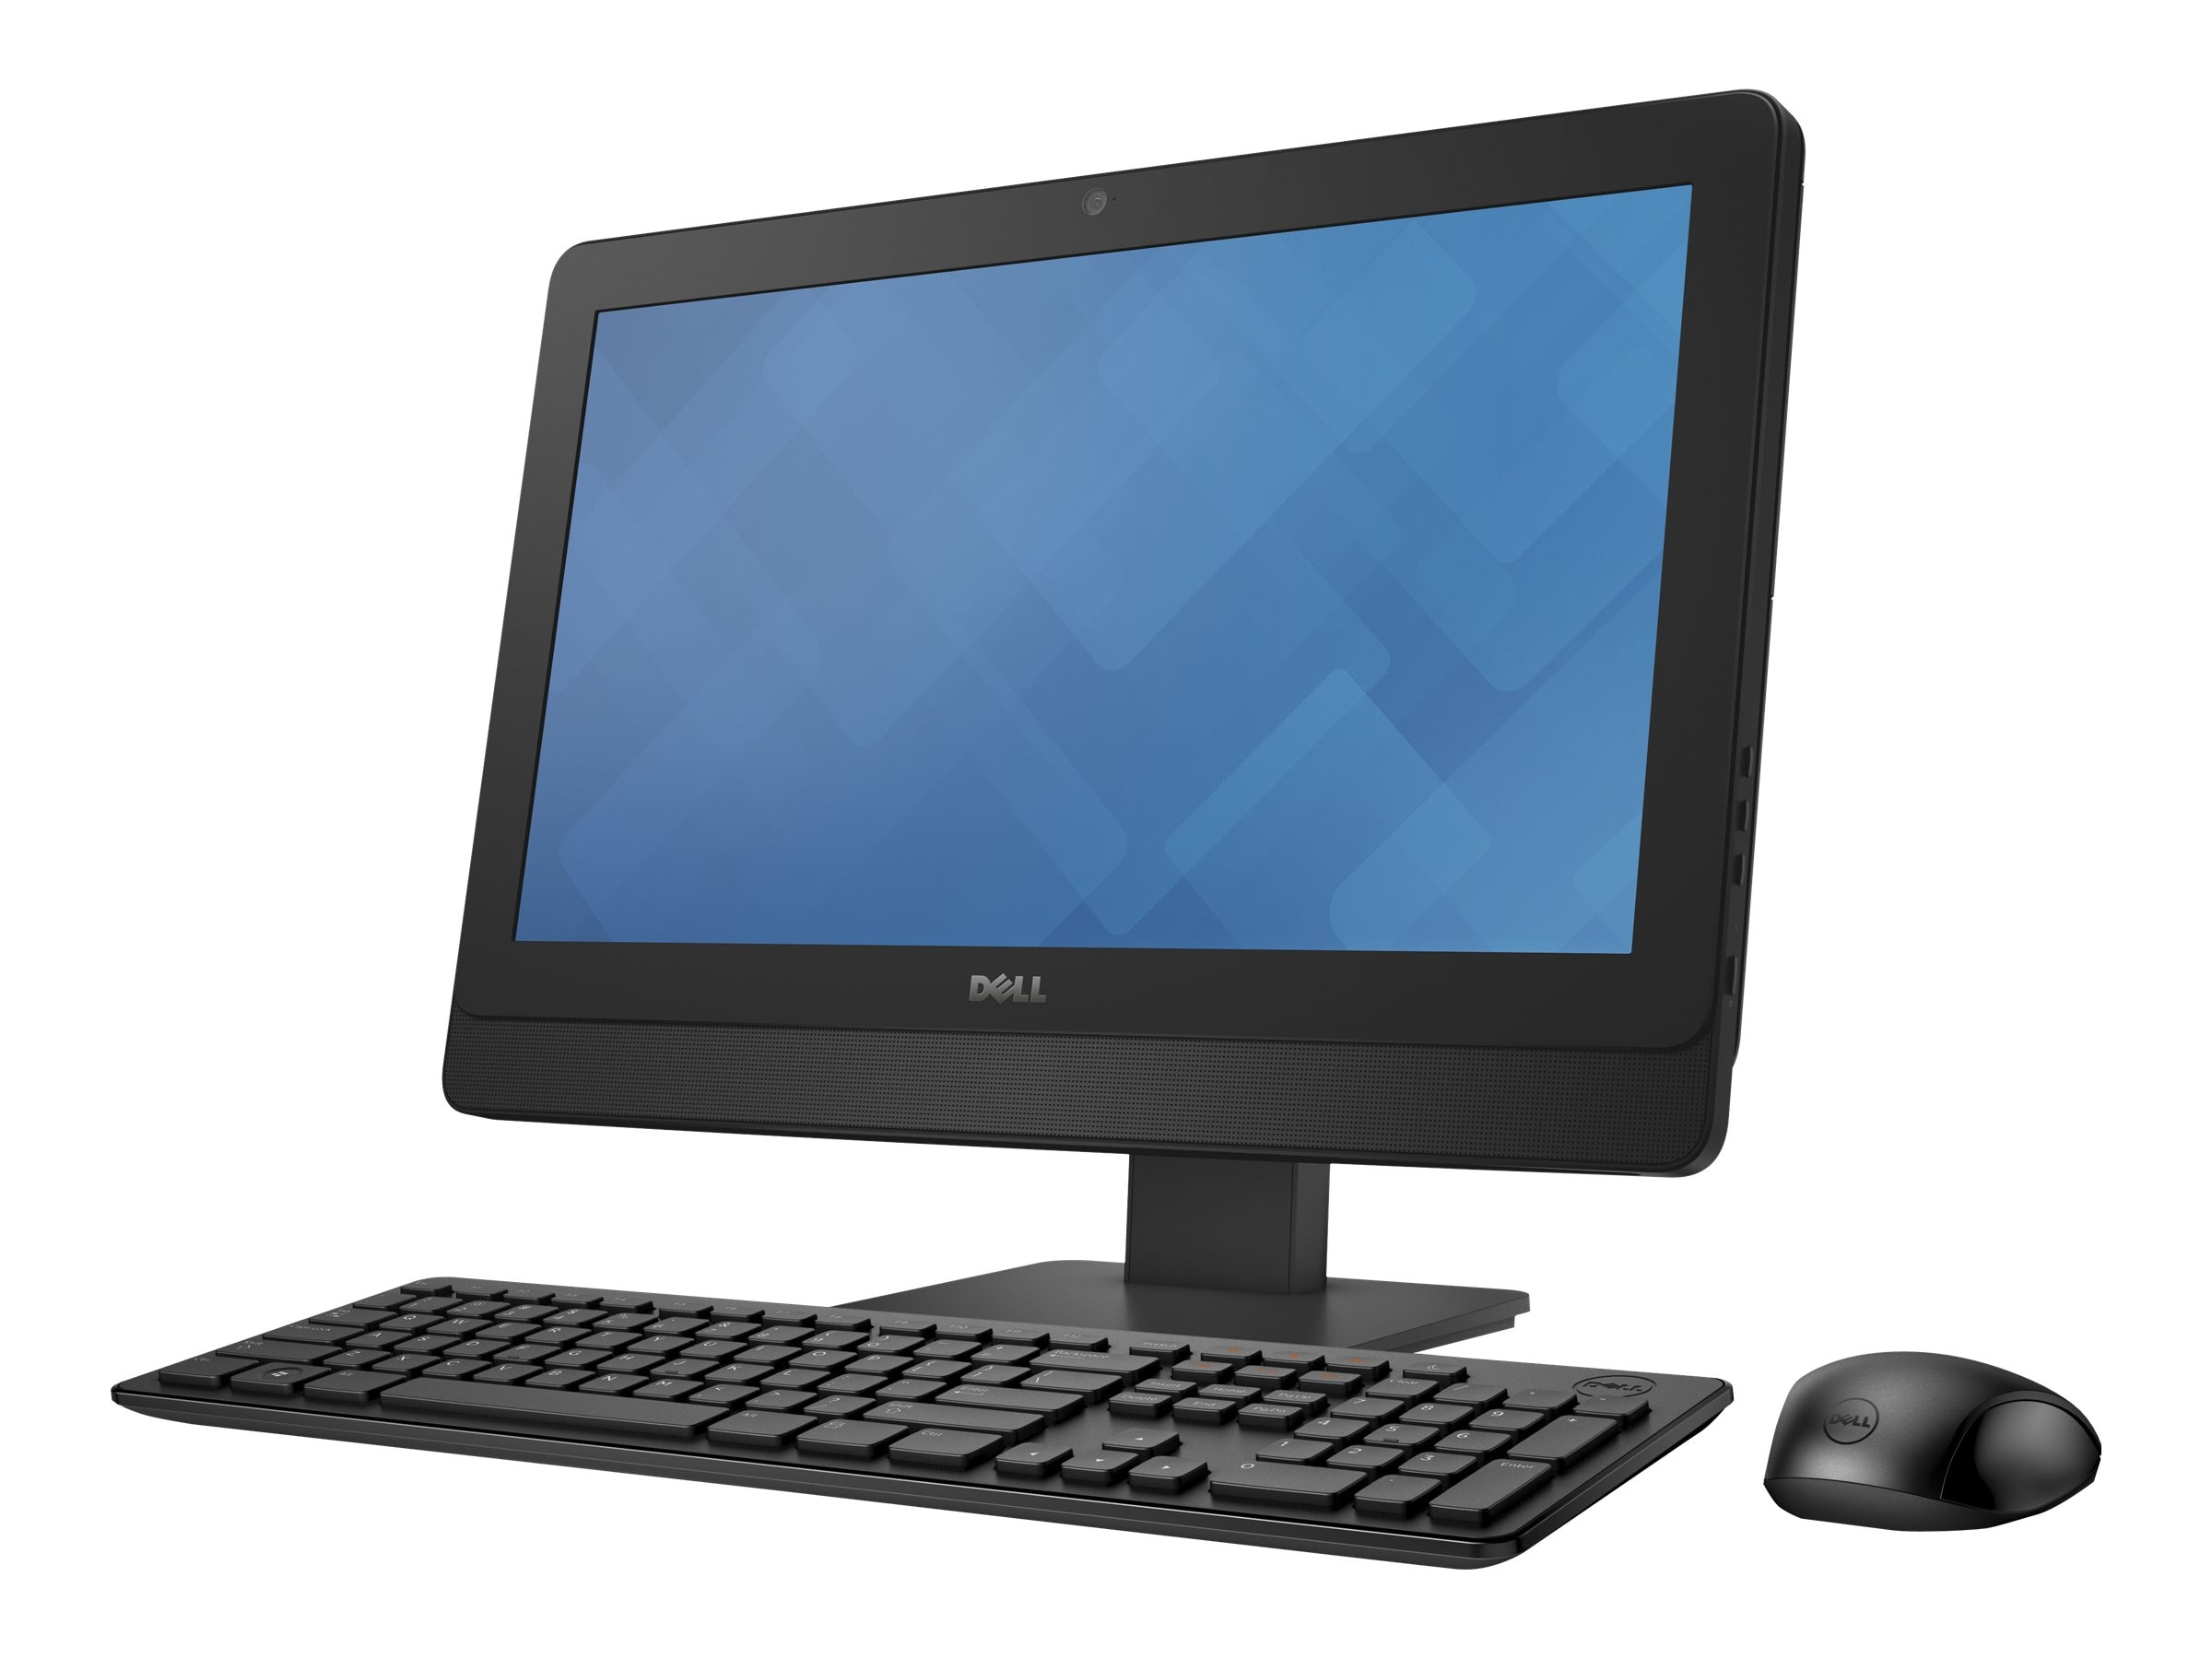 Dell OptiPlex 3030 AIO Core i3-4160 3.6GHz 4GB 500GB DVD+RW GbE agn 19.5 HD+ W7P64-W8.1P, 44K9G, 19135731, Desktops - All-in-One